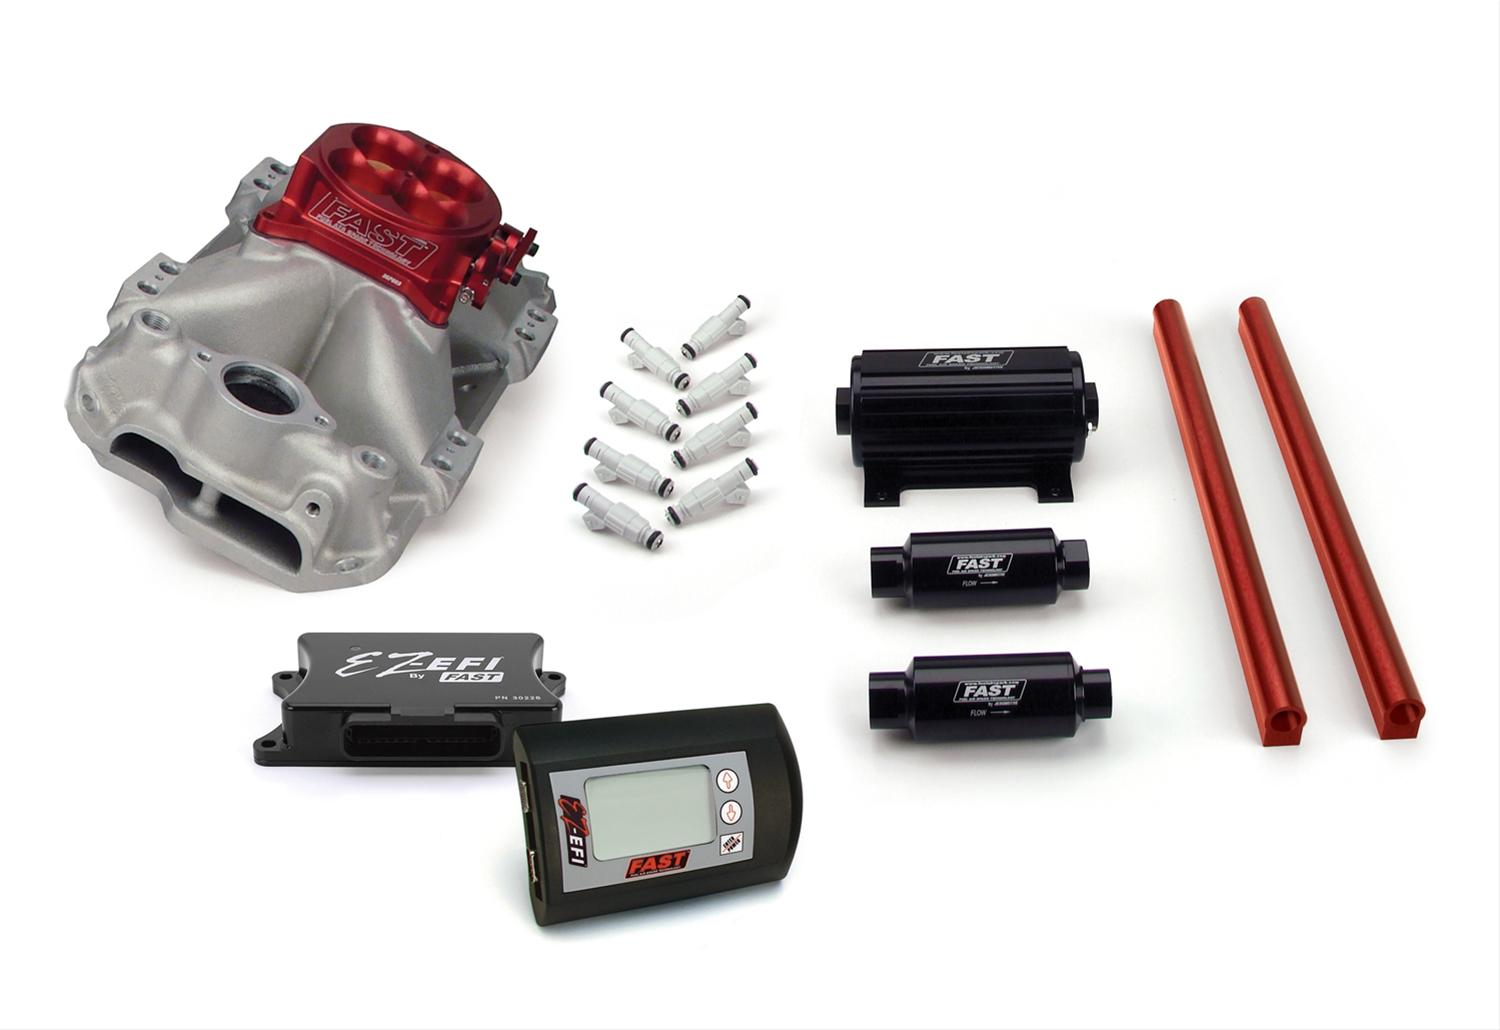 FAST EZ-EFI Multi-Port Complete Fuel Injection Systems 3012350-10E